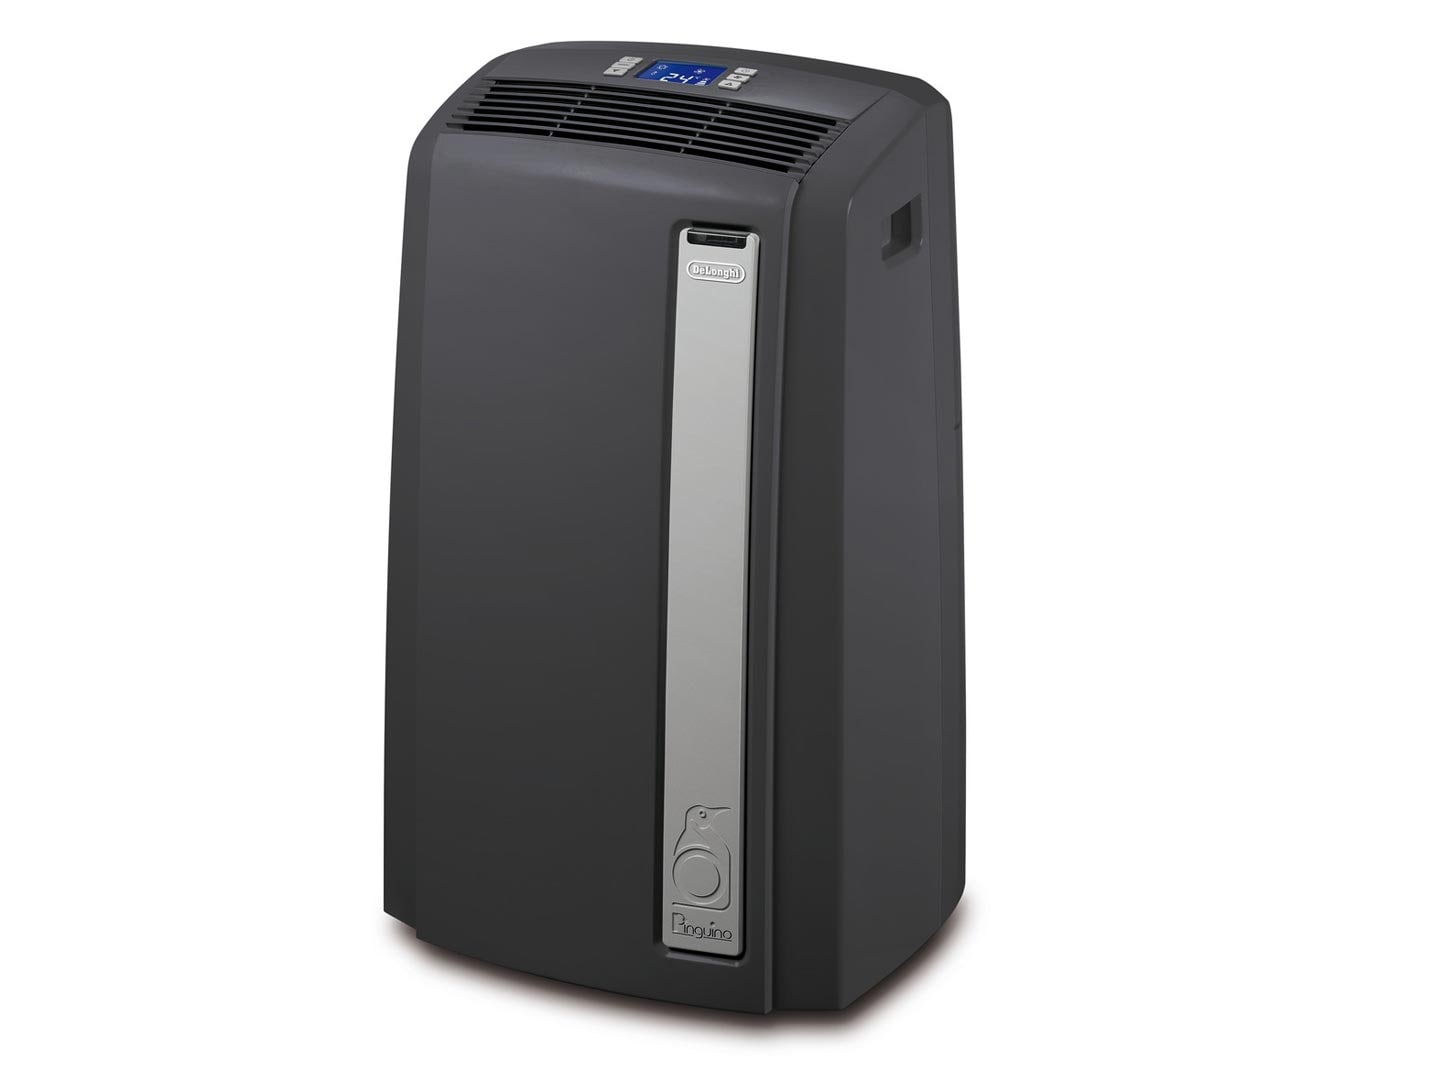 delonghi eco r410a air conditioner manual